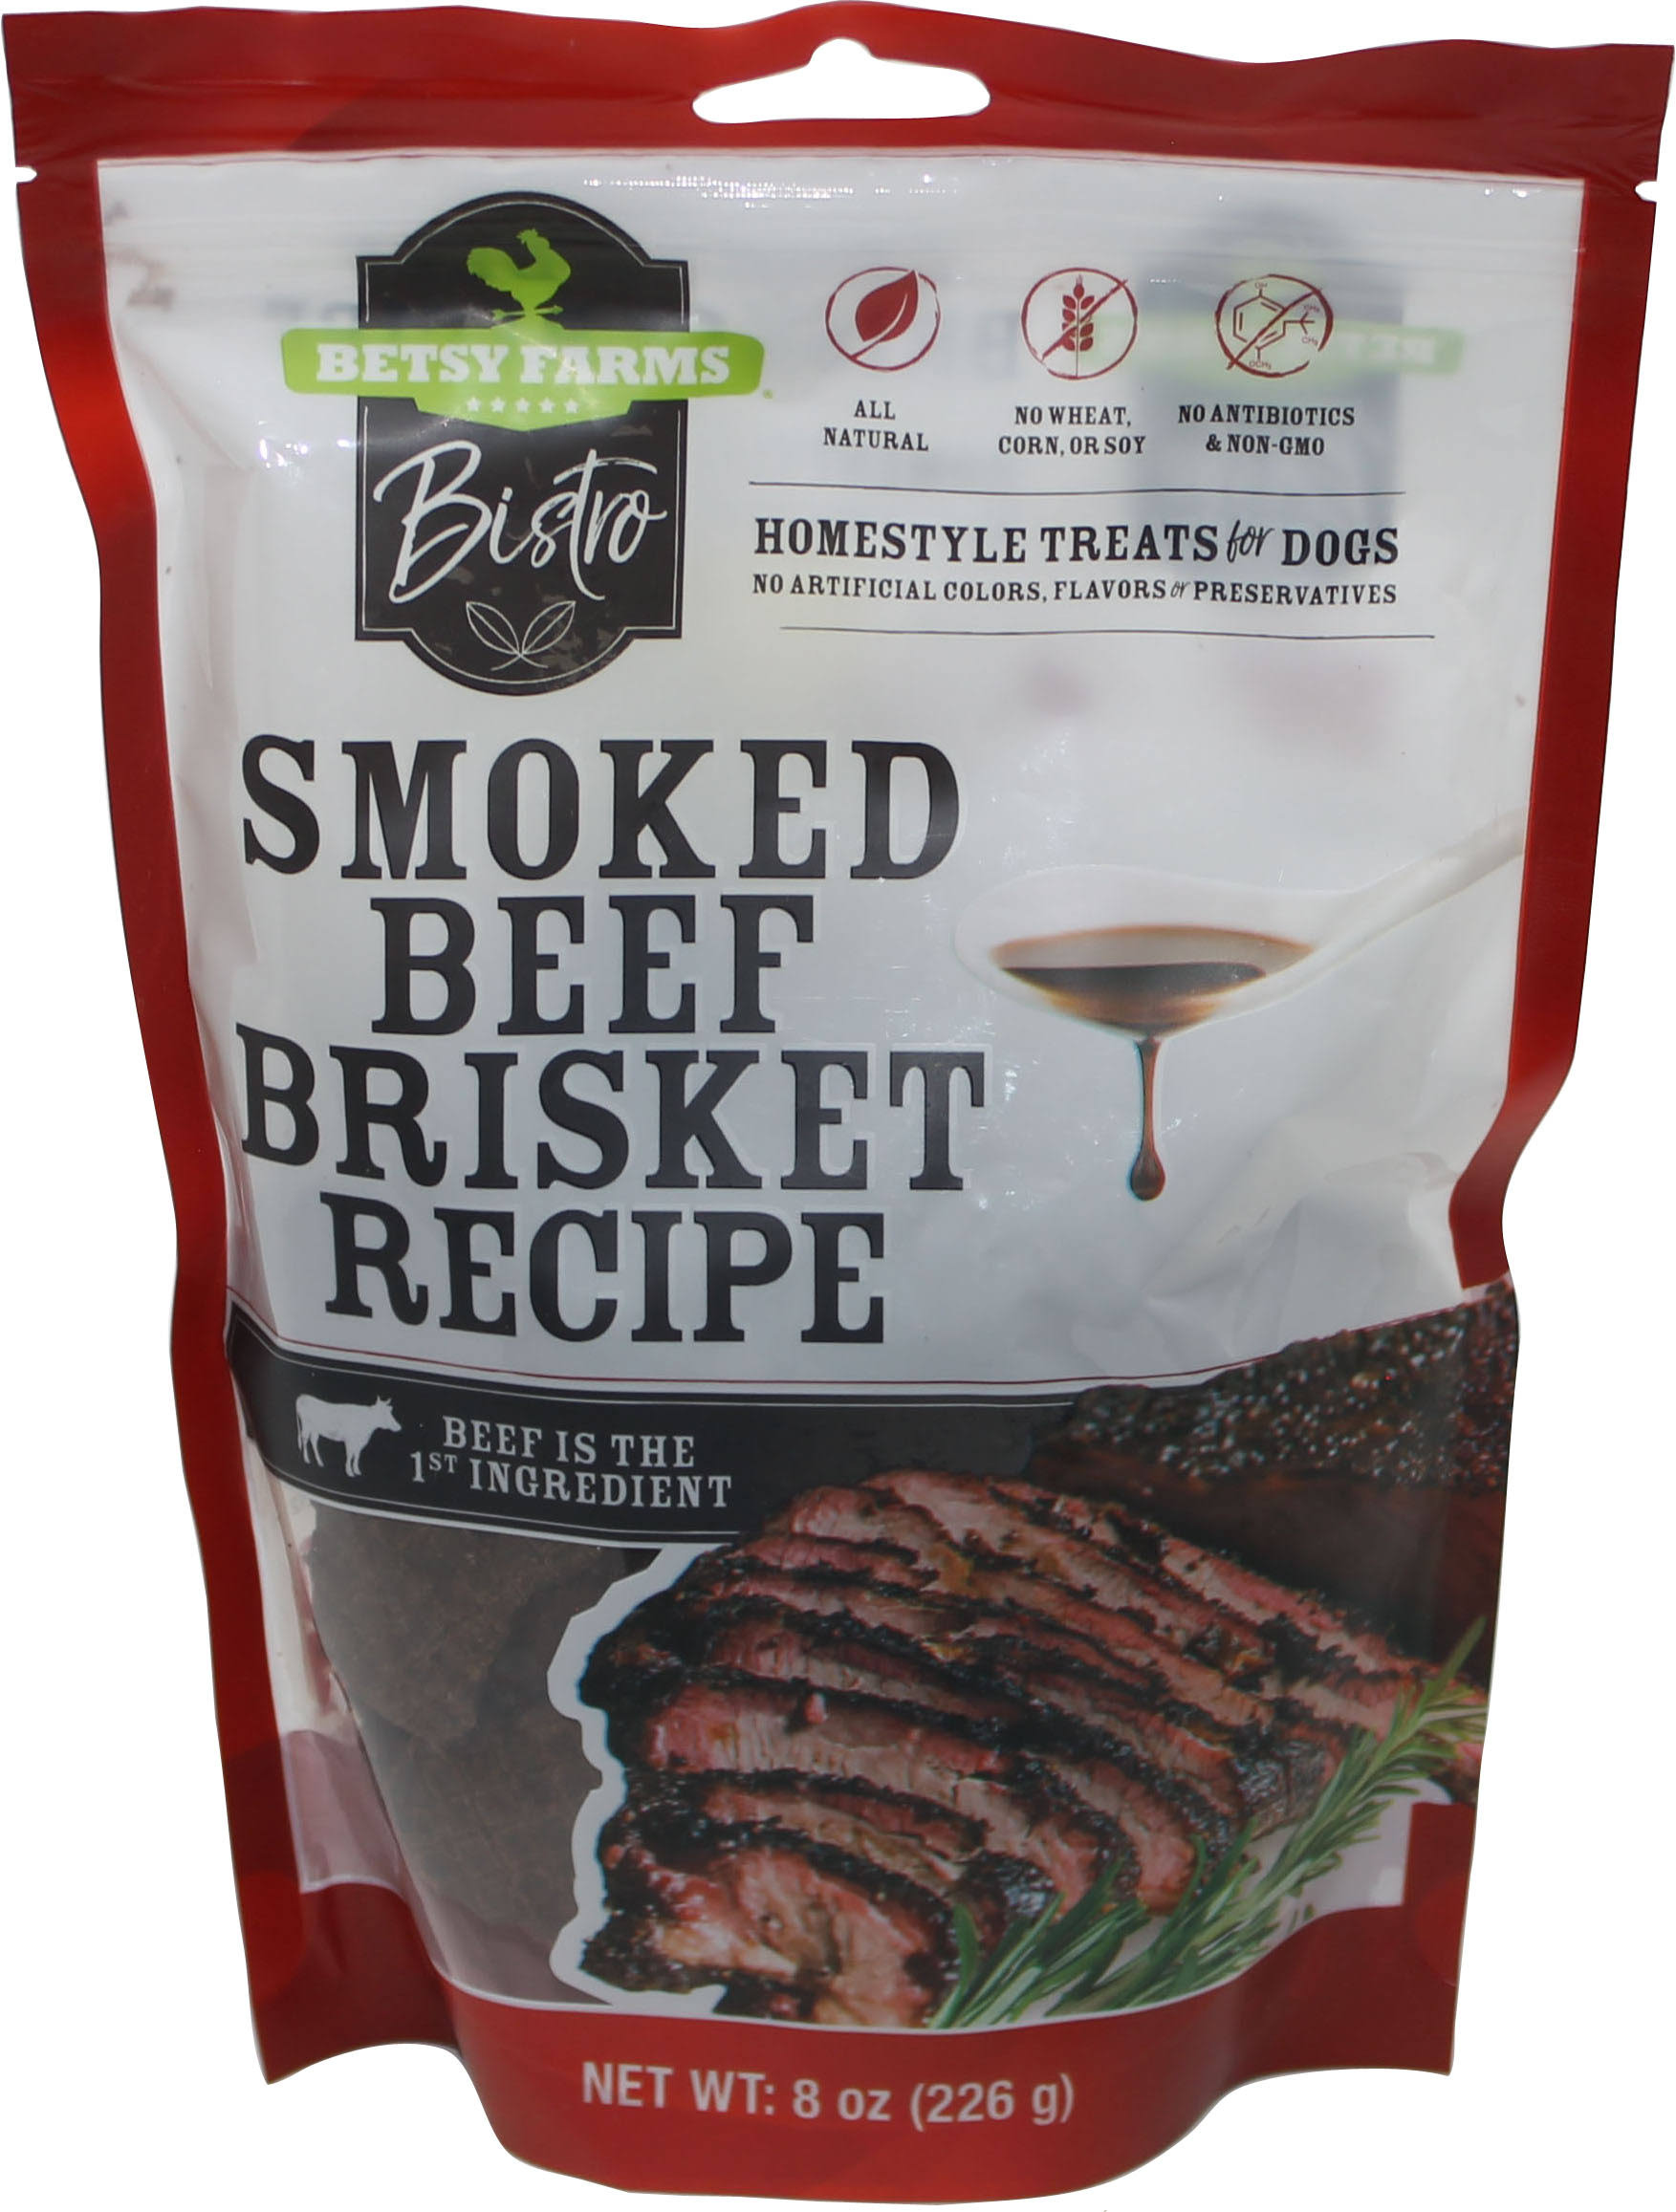 Betsy Farms Bistro Treats for Dogs, Homestyle, Smoked Beef Brisket Recipe - 8 oz